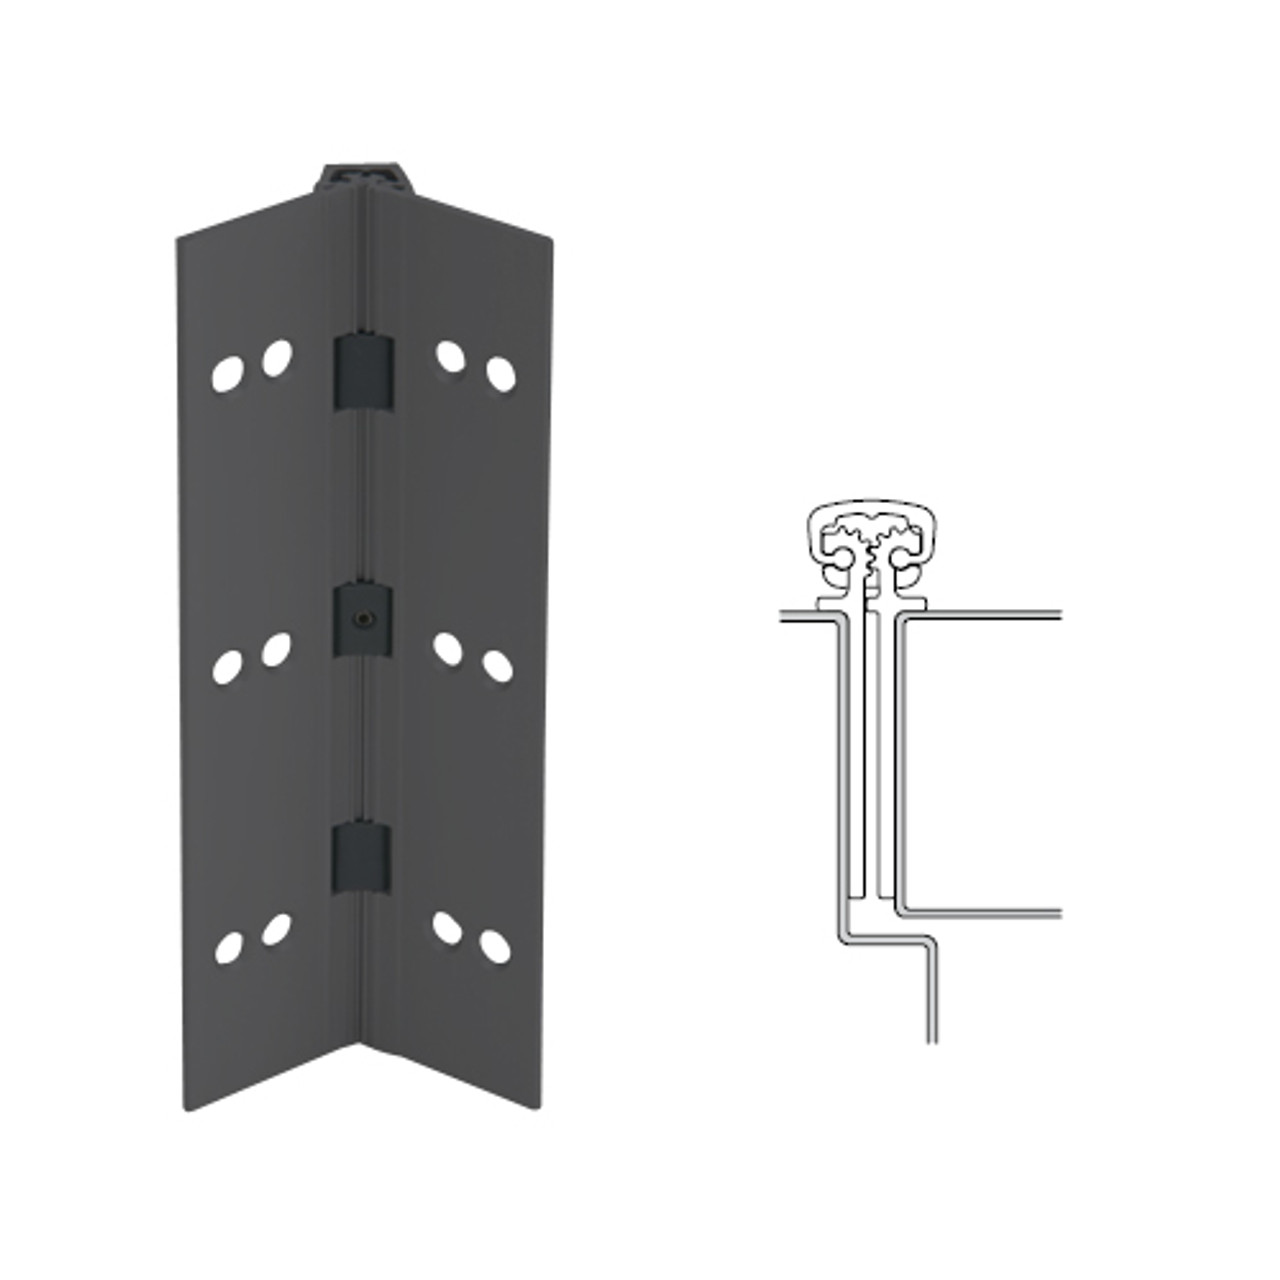 027XY-315AN-120-EPT IVES Full Mortise Continuous Geared Hinges with Electrical Power Transfer Prep in Anodized Black